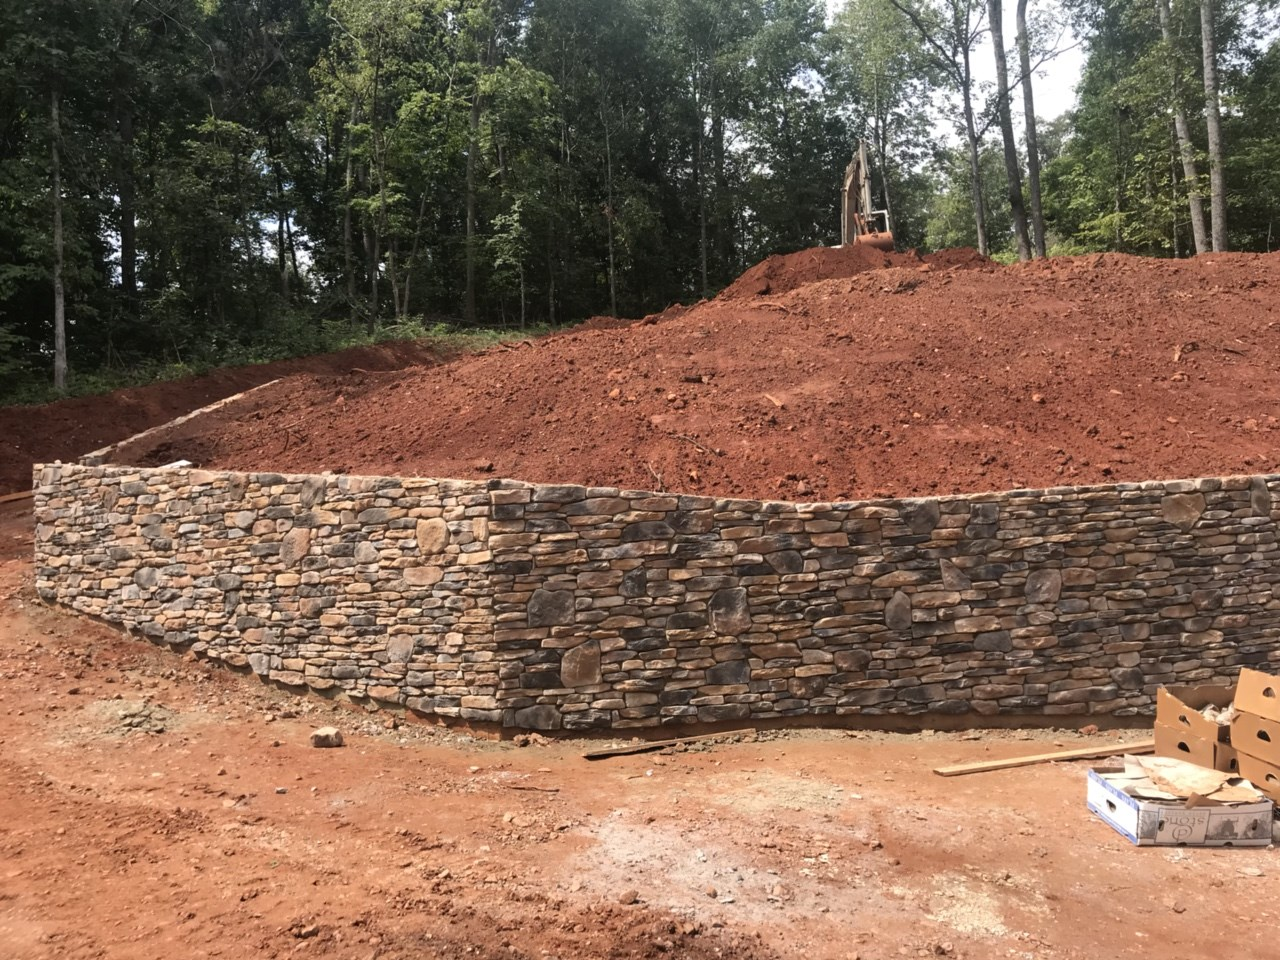 5-retaining walls with stone